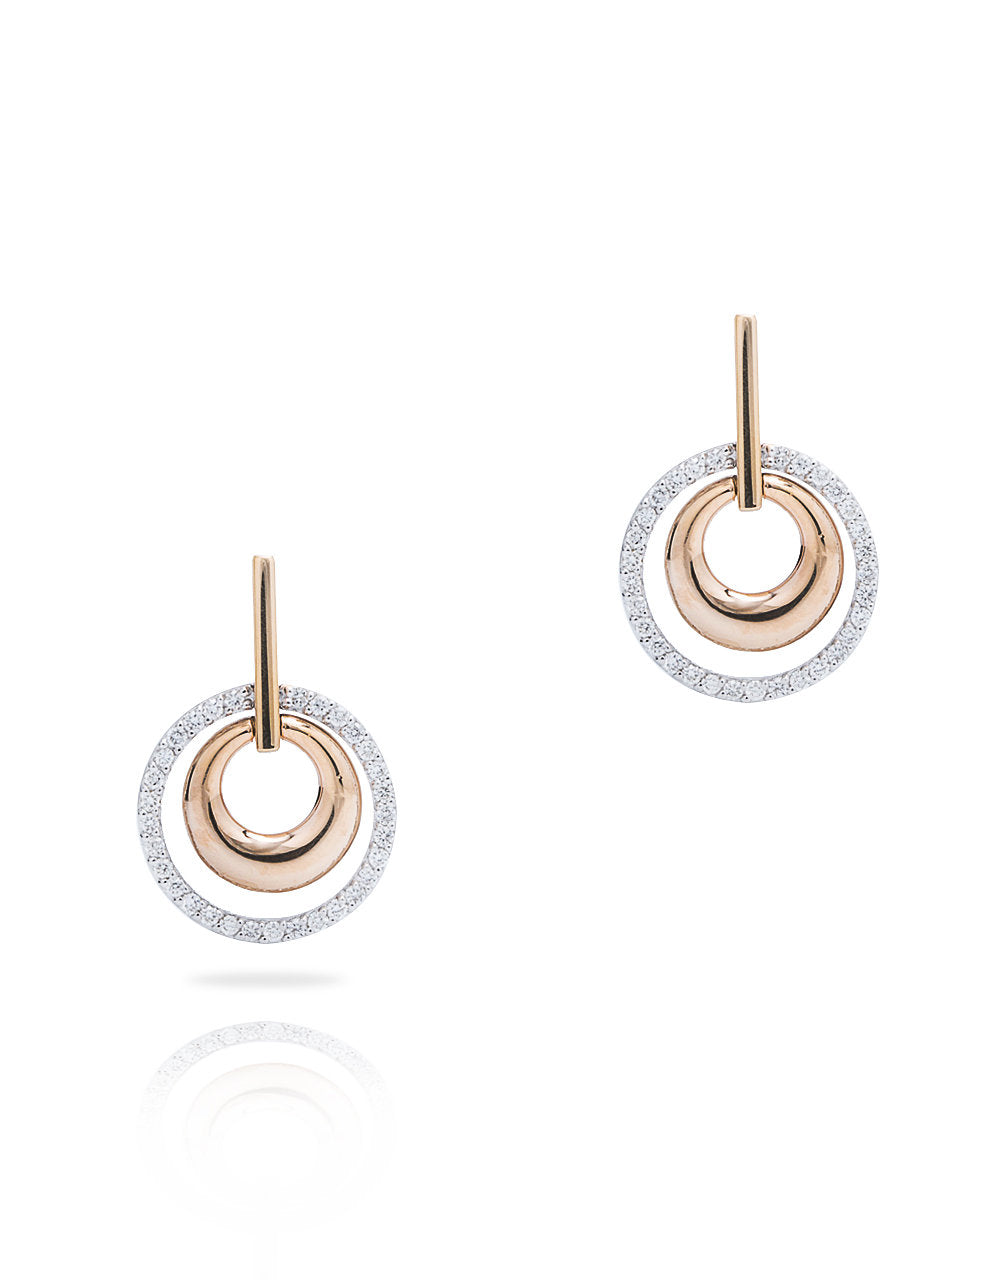 Double Circle Two-Tone Diamond Accent Earrings - Charles Koll Jewellers